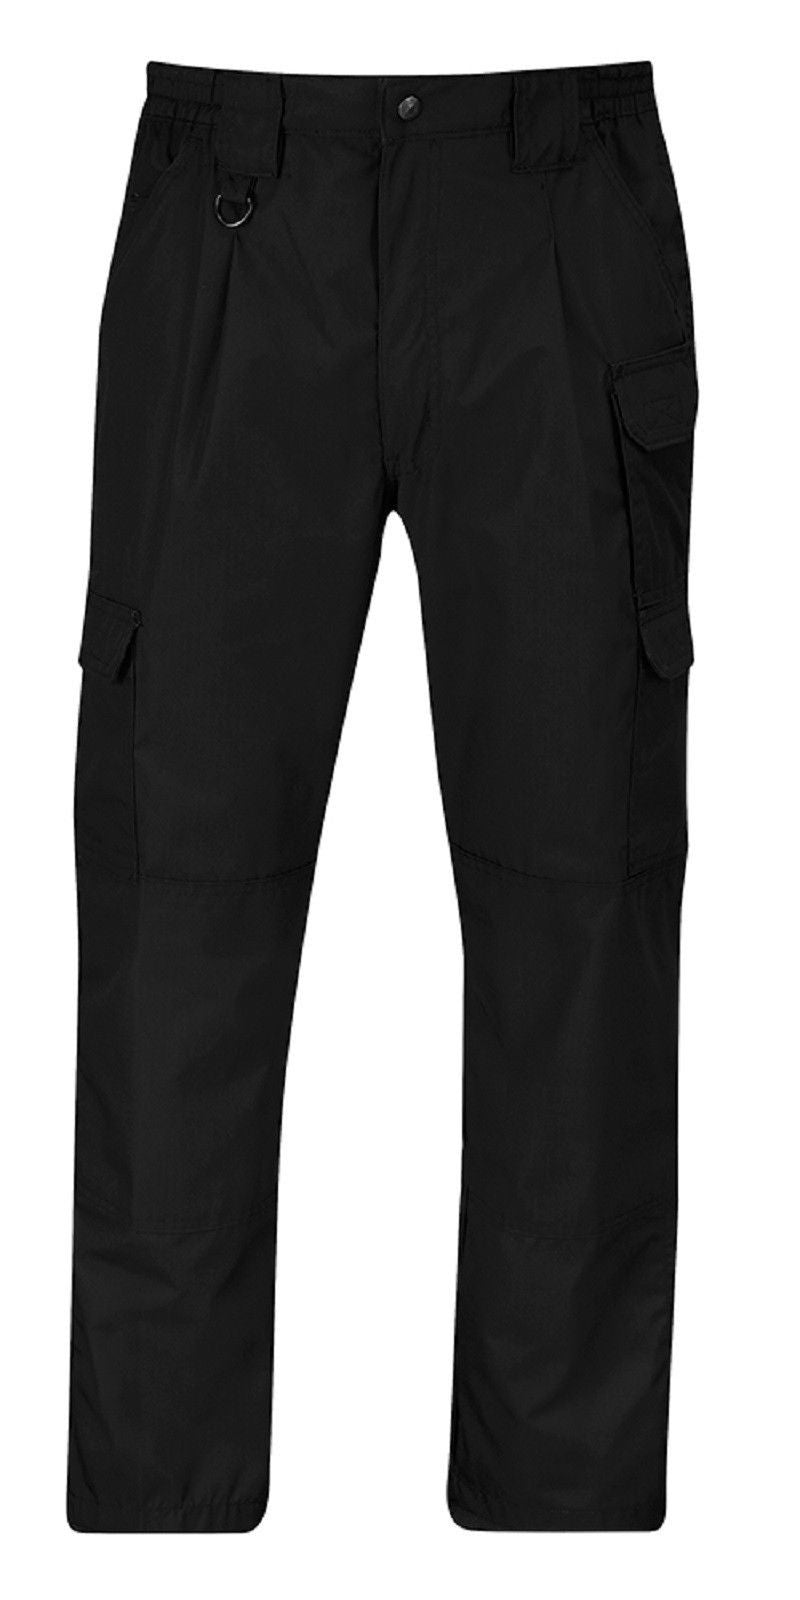 Propper Big and Tall Tactical Pant - Lightweight Ripstop Uniform Plus Sizes  Black ... 7ae8d7e769d